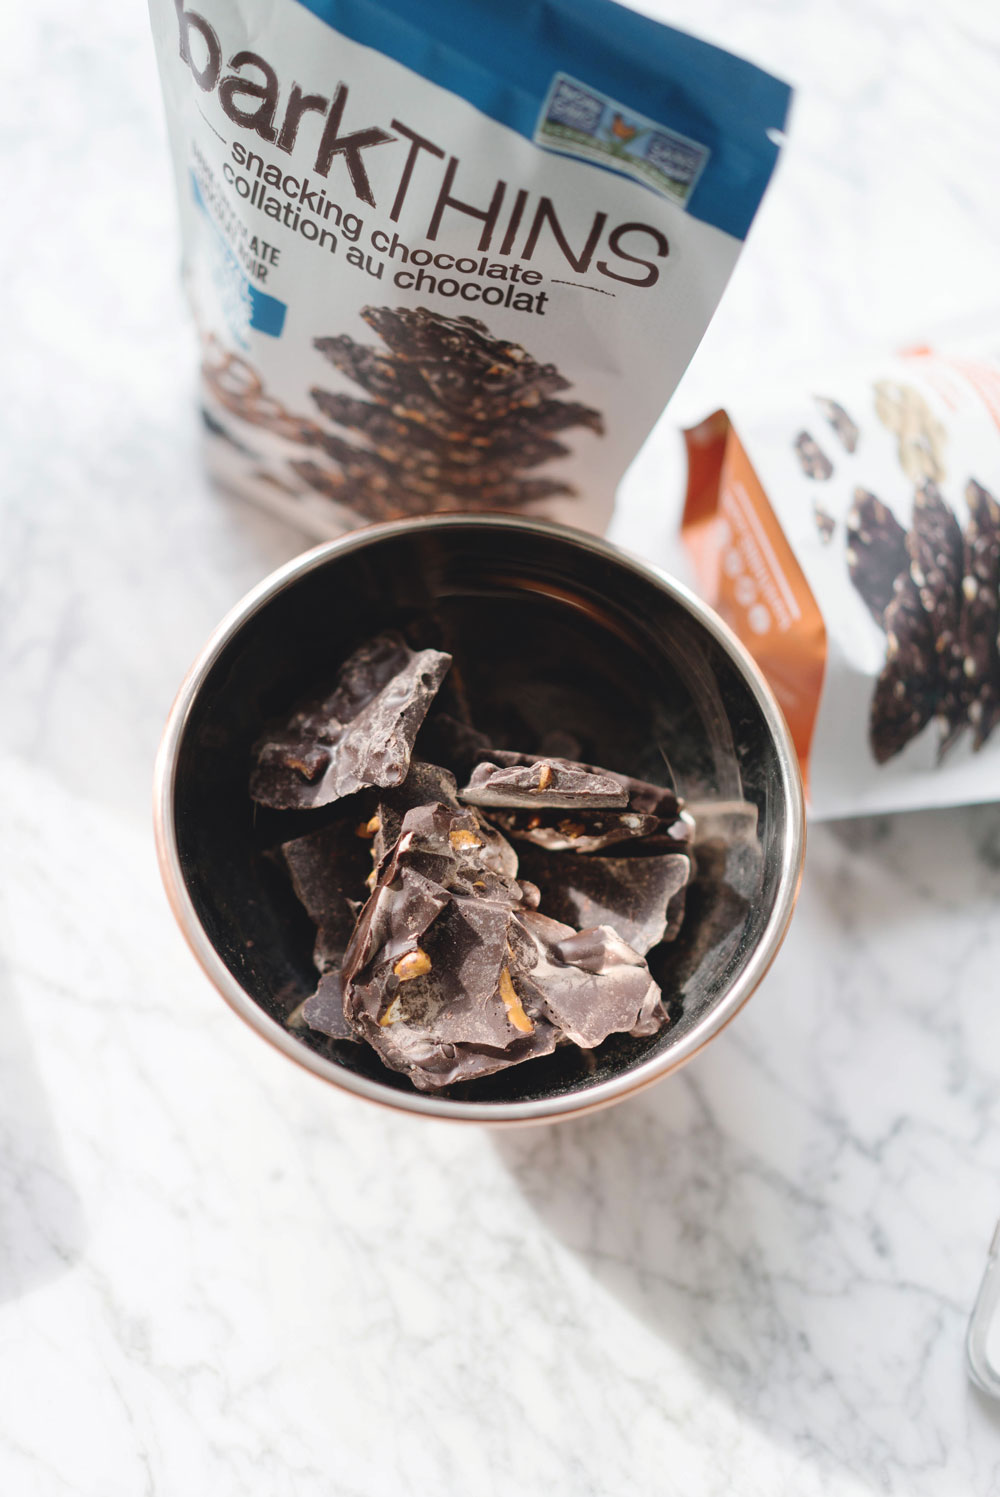 Best dark chocolate snacks, barkTHINS, betterwithbarkTHINS, snackingelevated, pumpkin seed barkTHINS, pretzel with sea salt barkTHINS, almond with sea salt barkTHINS, best snacks by To Vogue or Bust